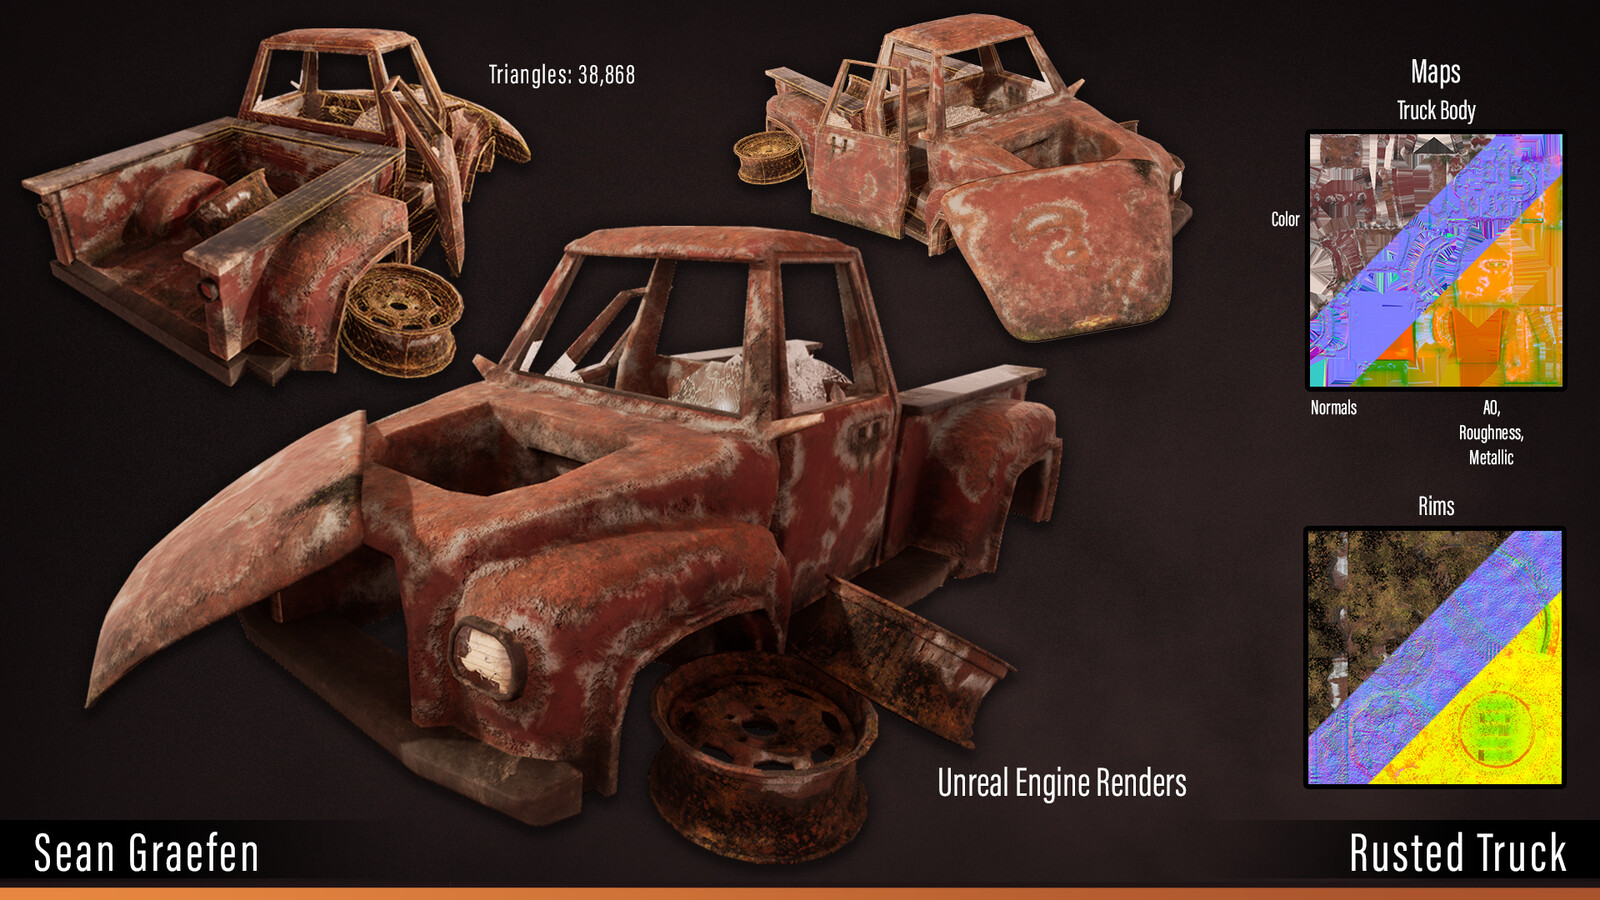 Rusted truck model sheet.